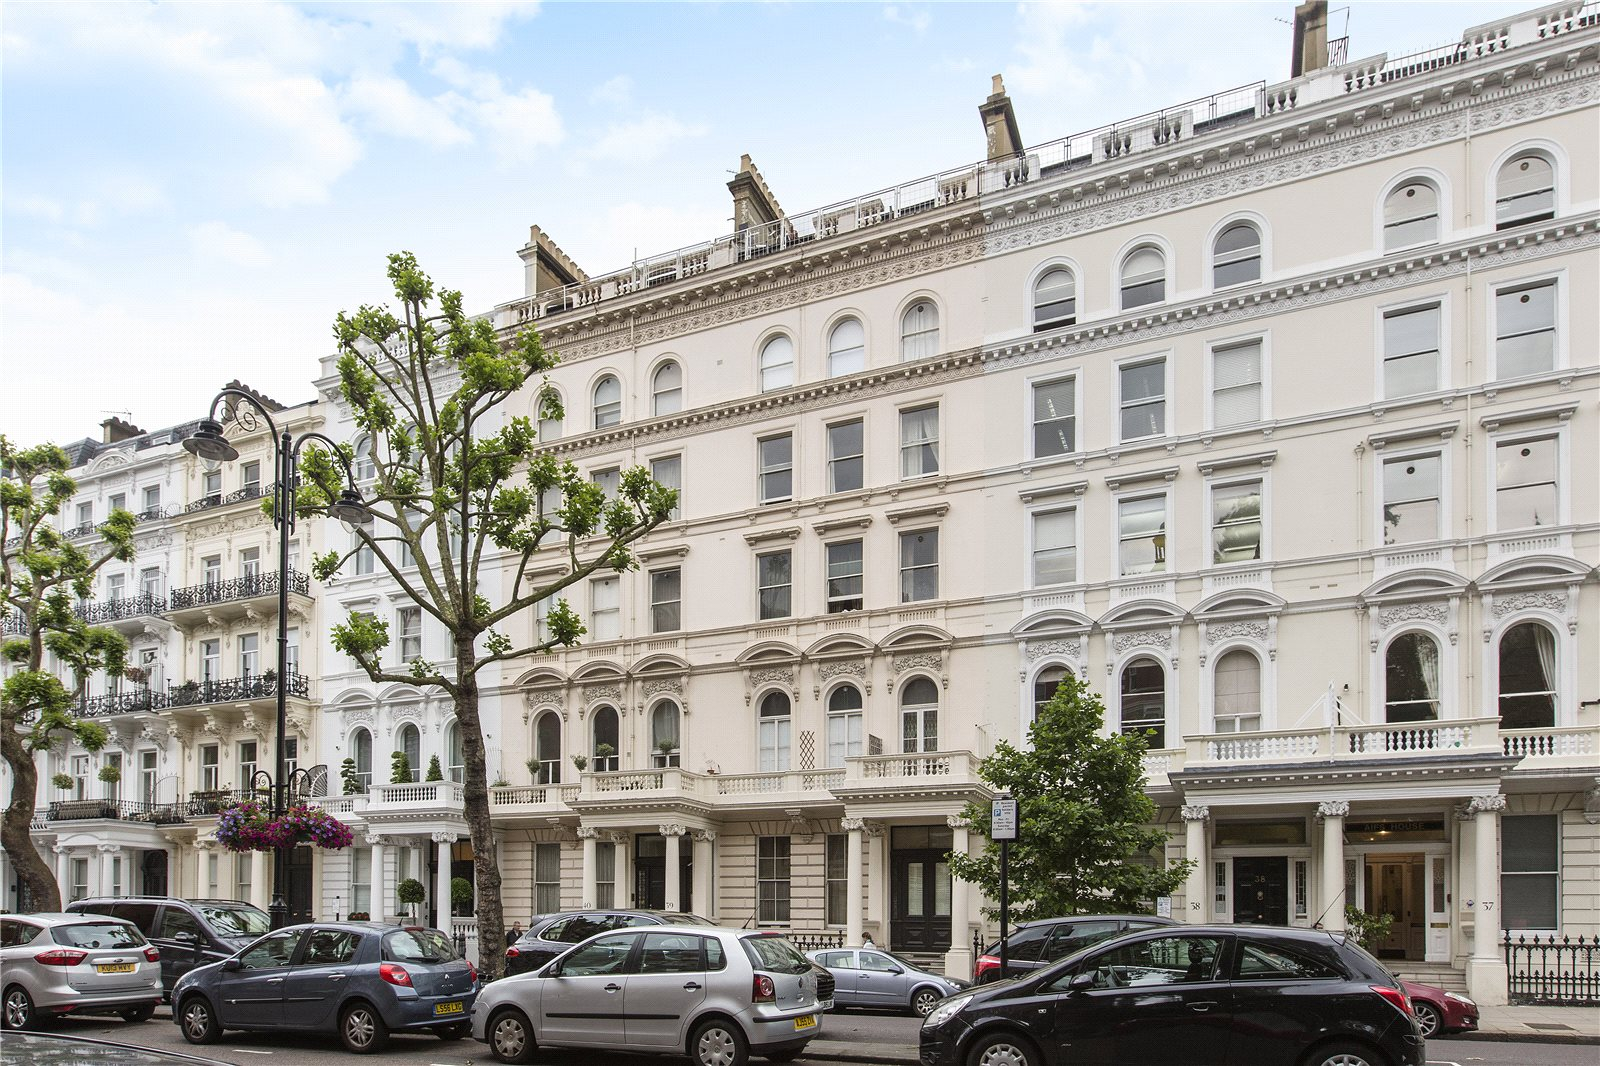 Additional photo for property listing at Queen's Gate, South Kensington, London, SW7 South Kensington, London, Engeland